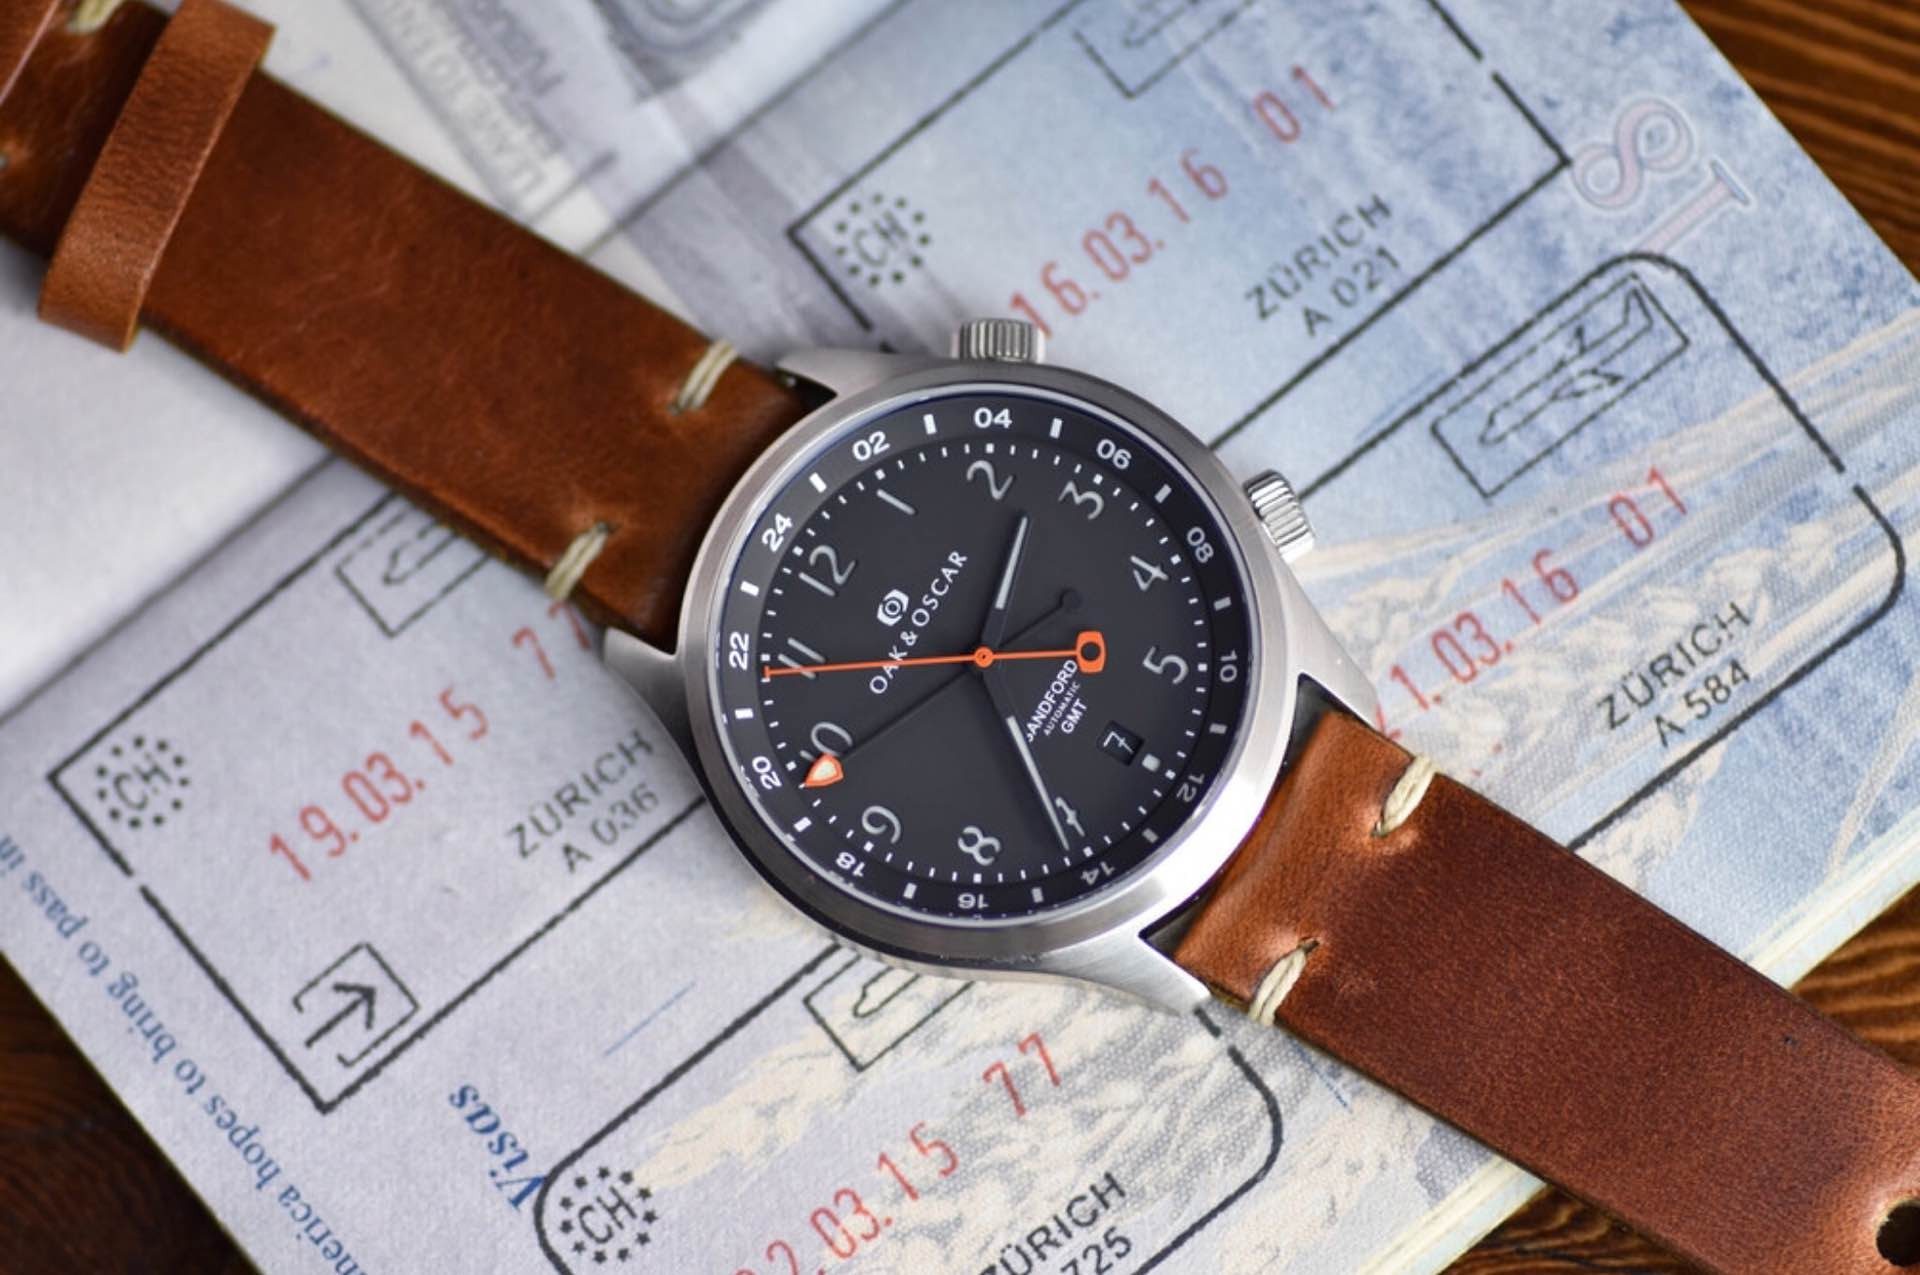 The upcoming Sandford watch by Oak & Oscar. ($1,850; expected to ship in Fall 2016)